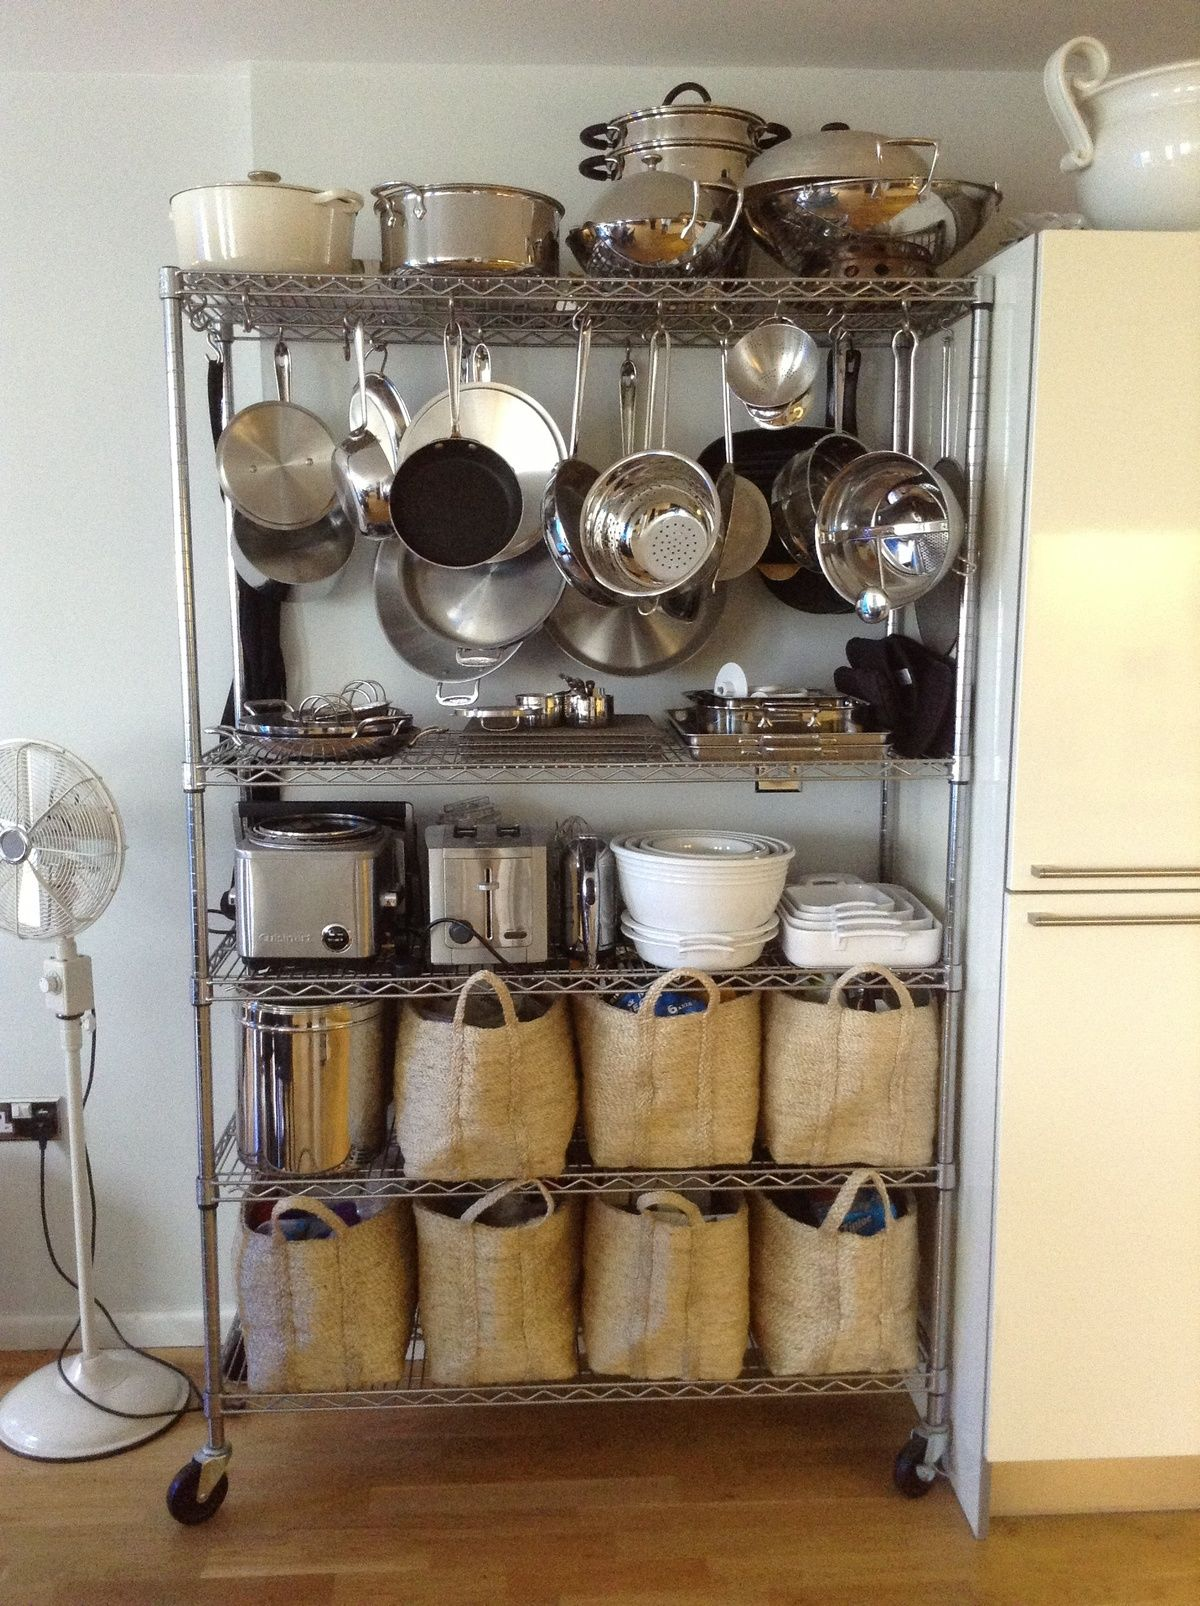 hang pots and pans from bakers rack small kitchen storage design your kitchen on kitchen organization pots and pans id=25737